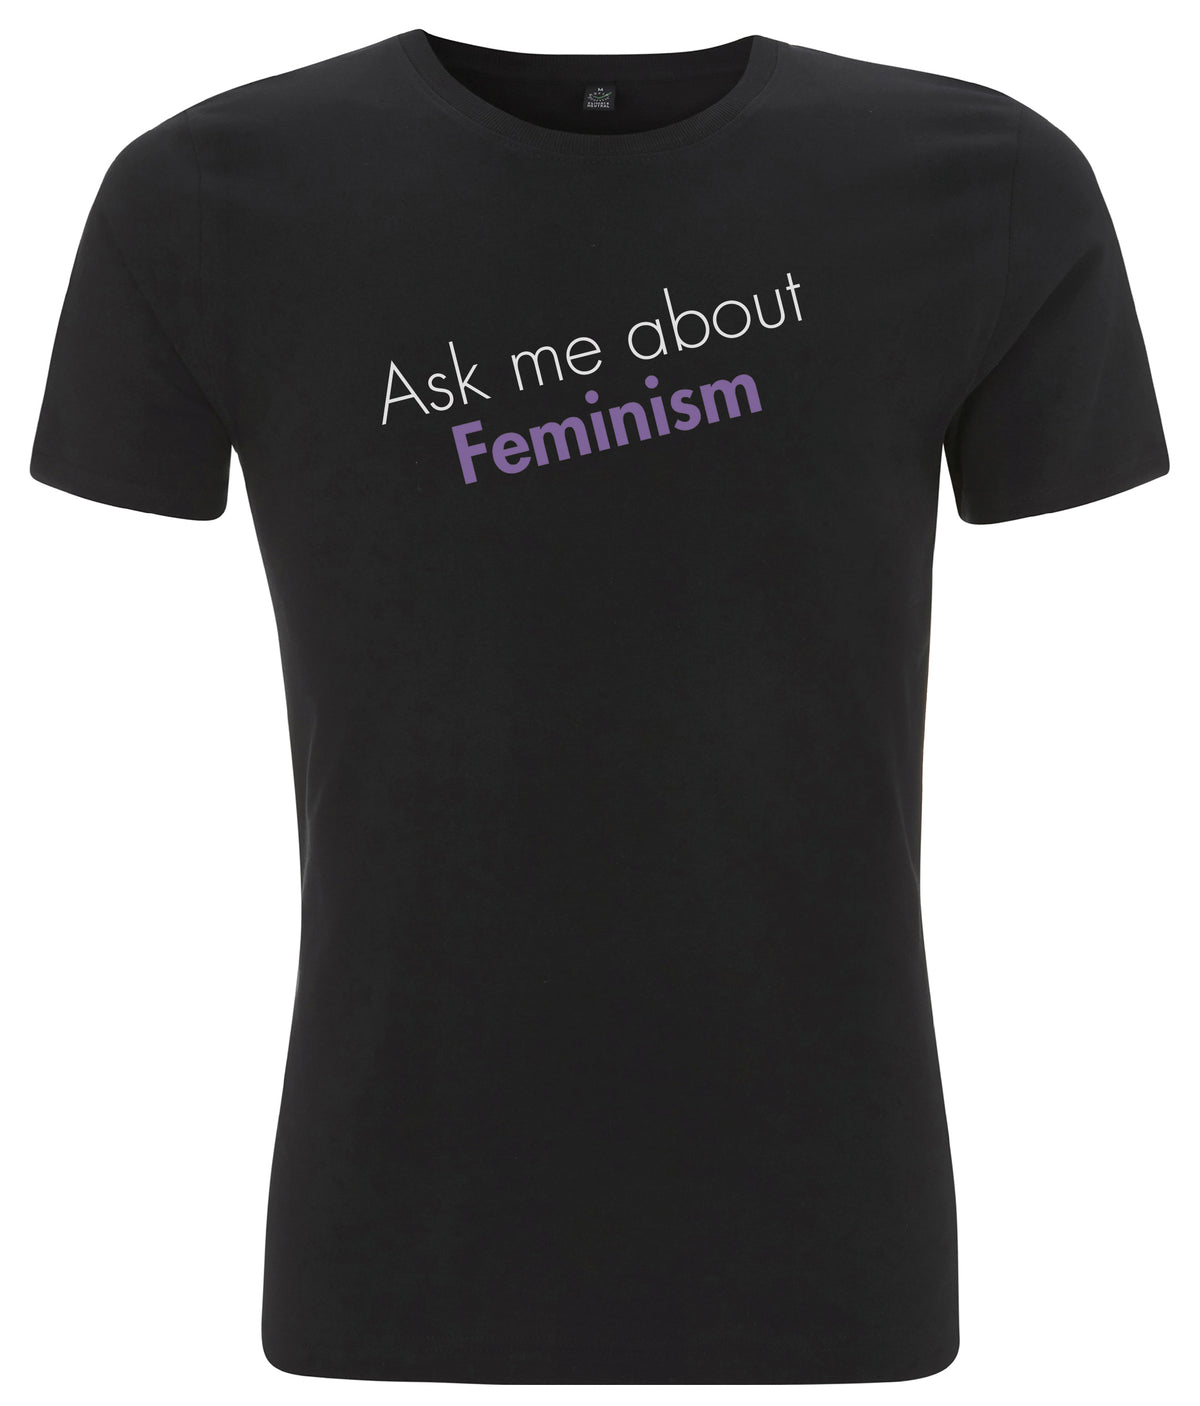 Ask Me About Feminism Organic Mens Feminist T Shirt Black